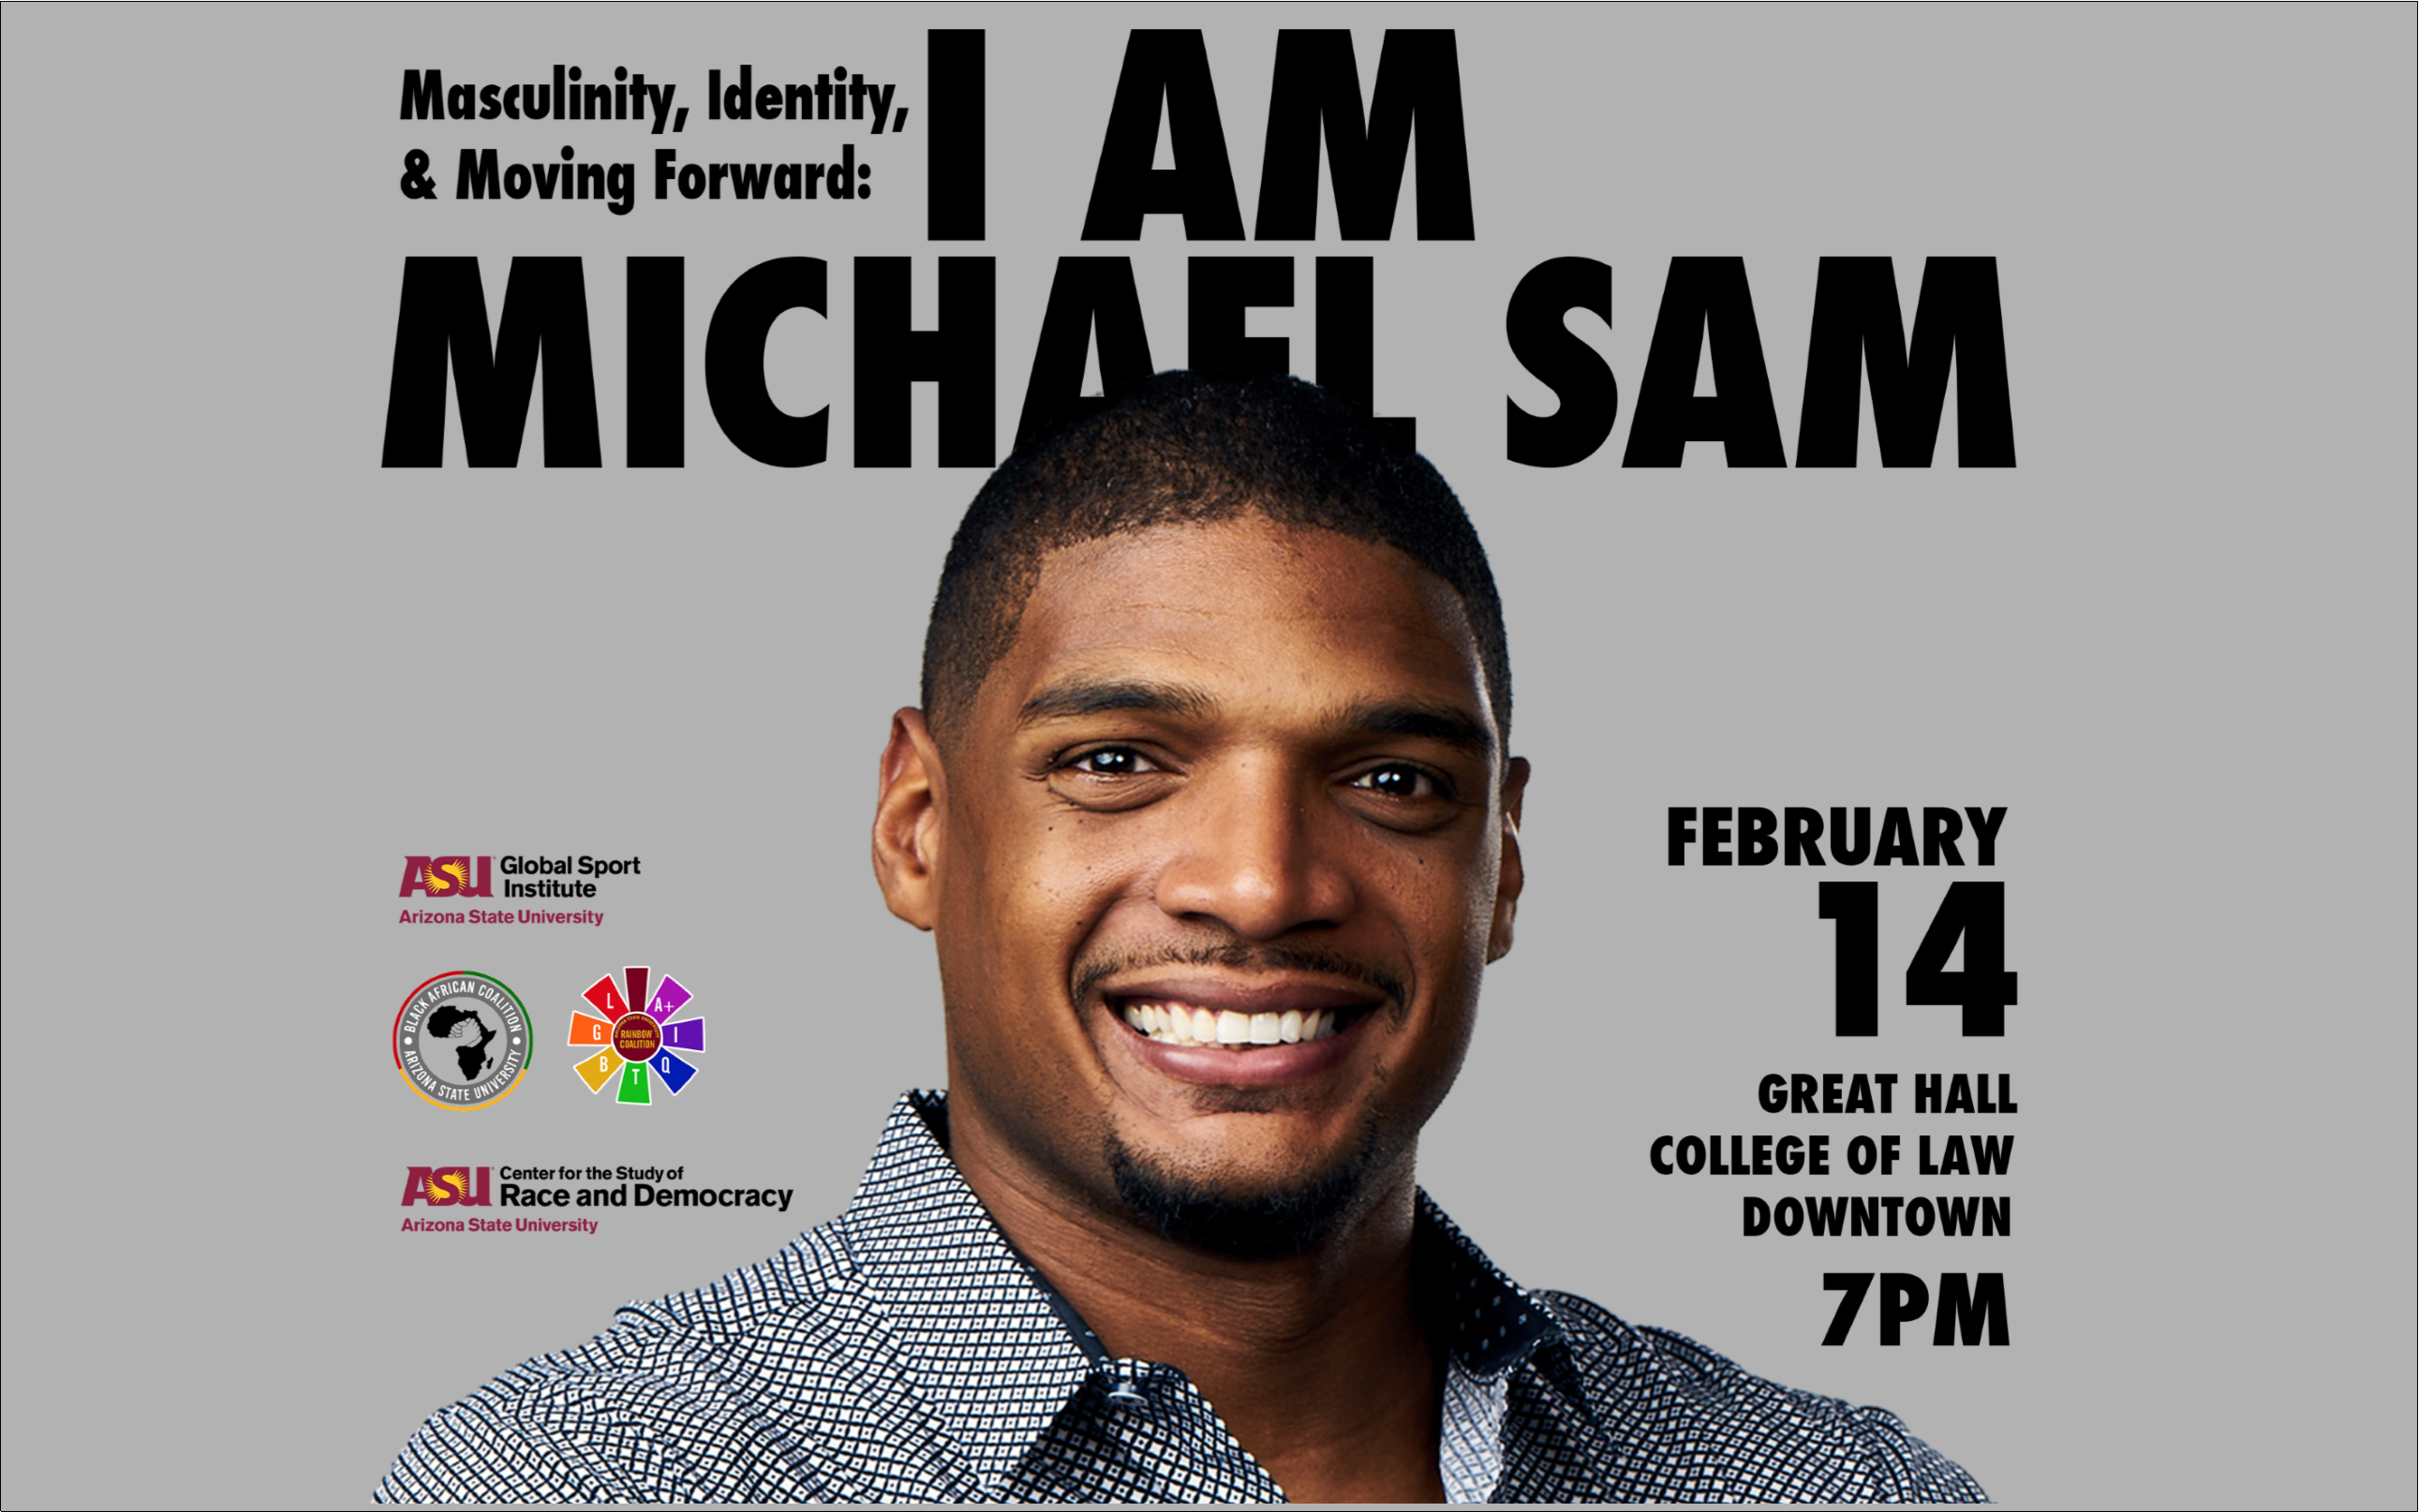 Michael Sam photo